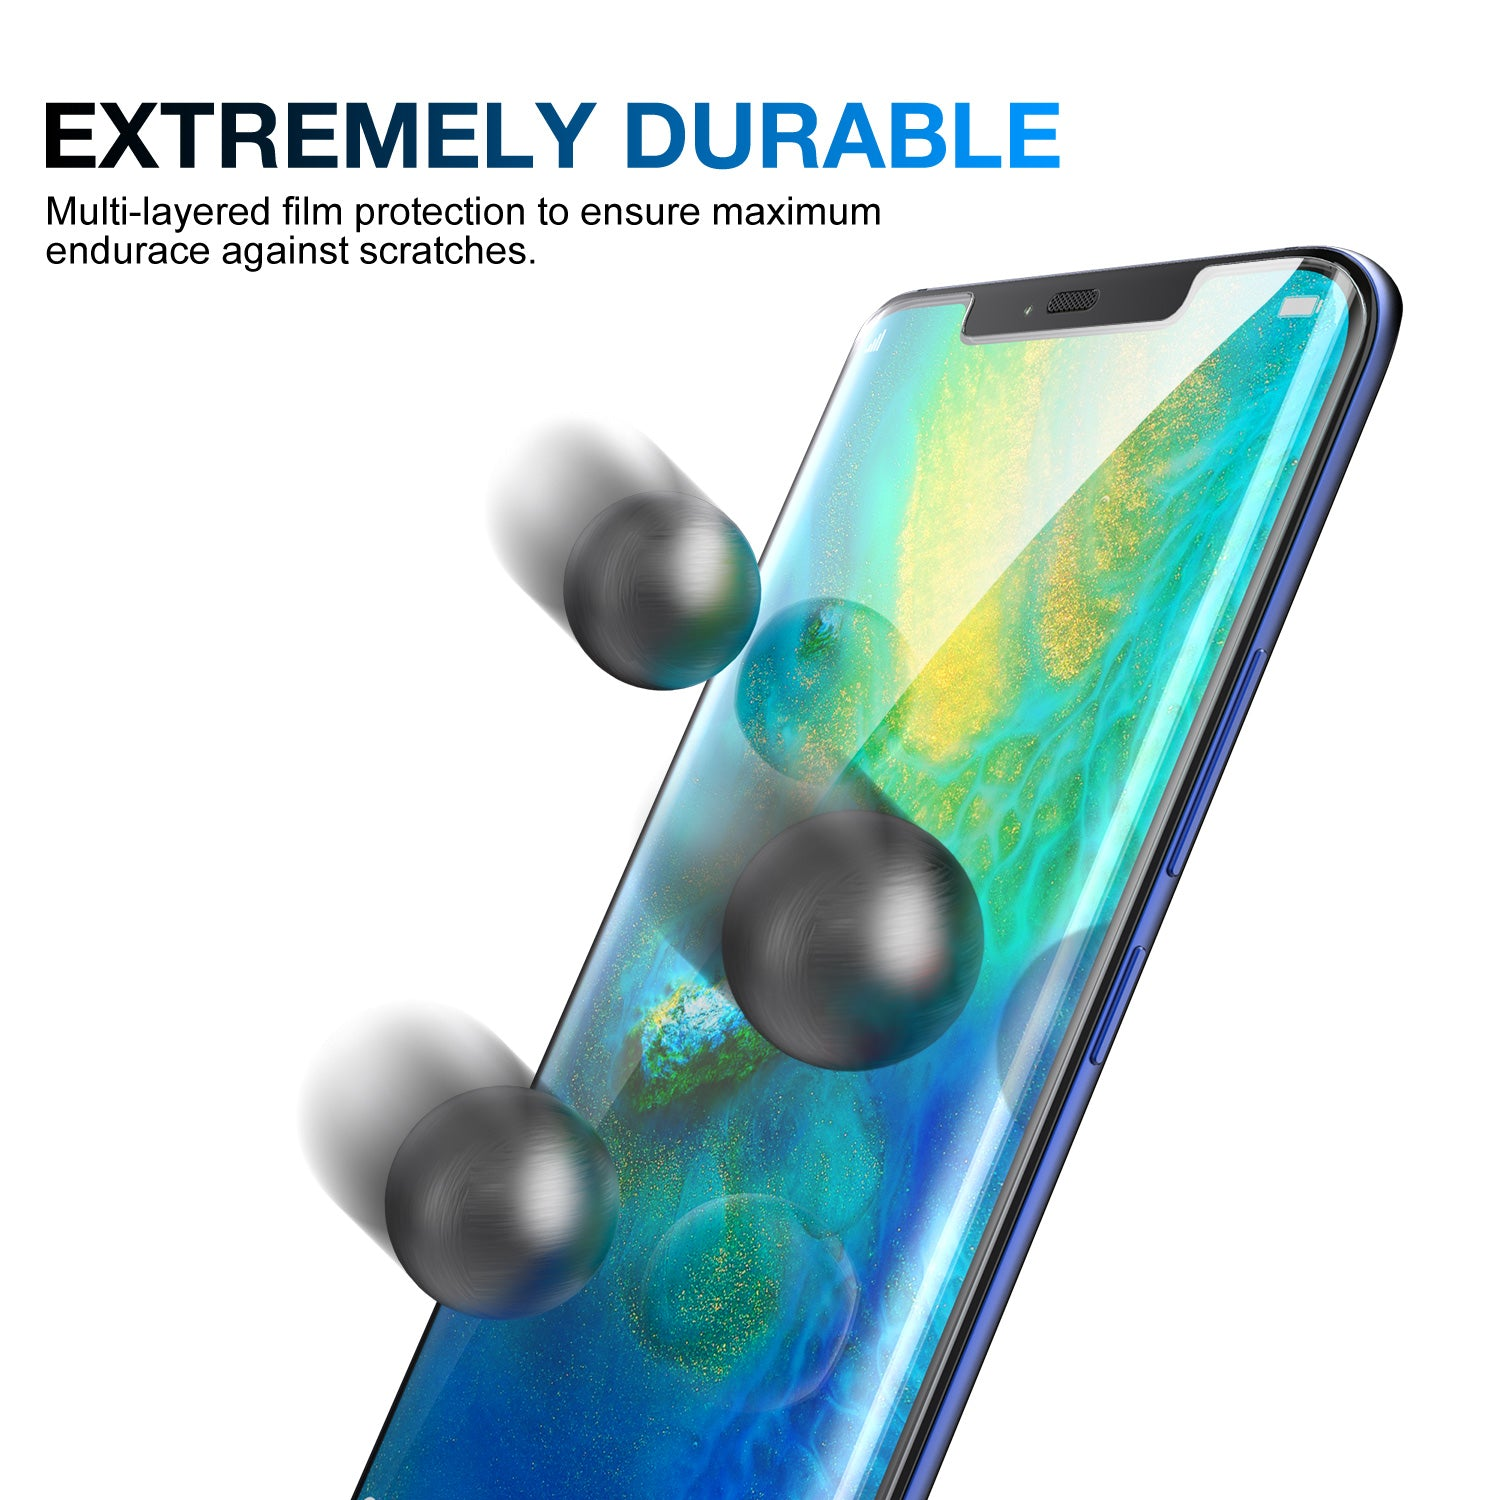 Huawei Mate 20 Pro HYDROGEL AQUA FLEXIBLE Crystal Film Screen Protector